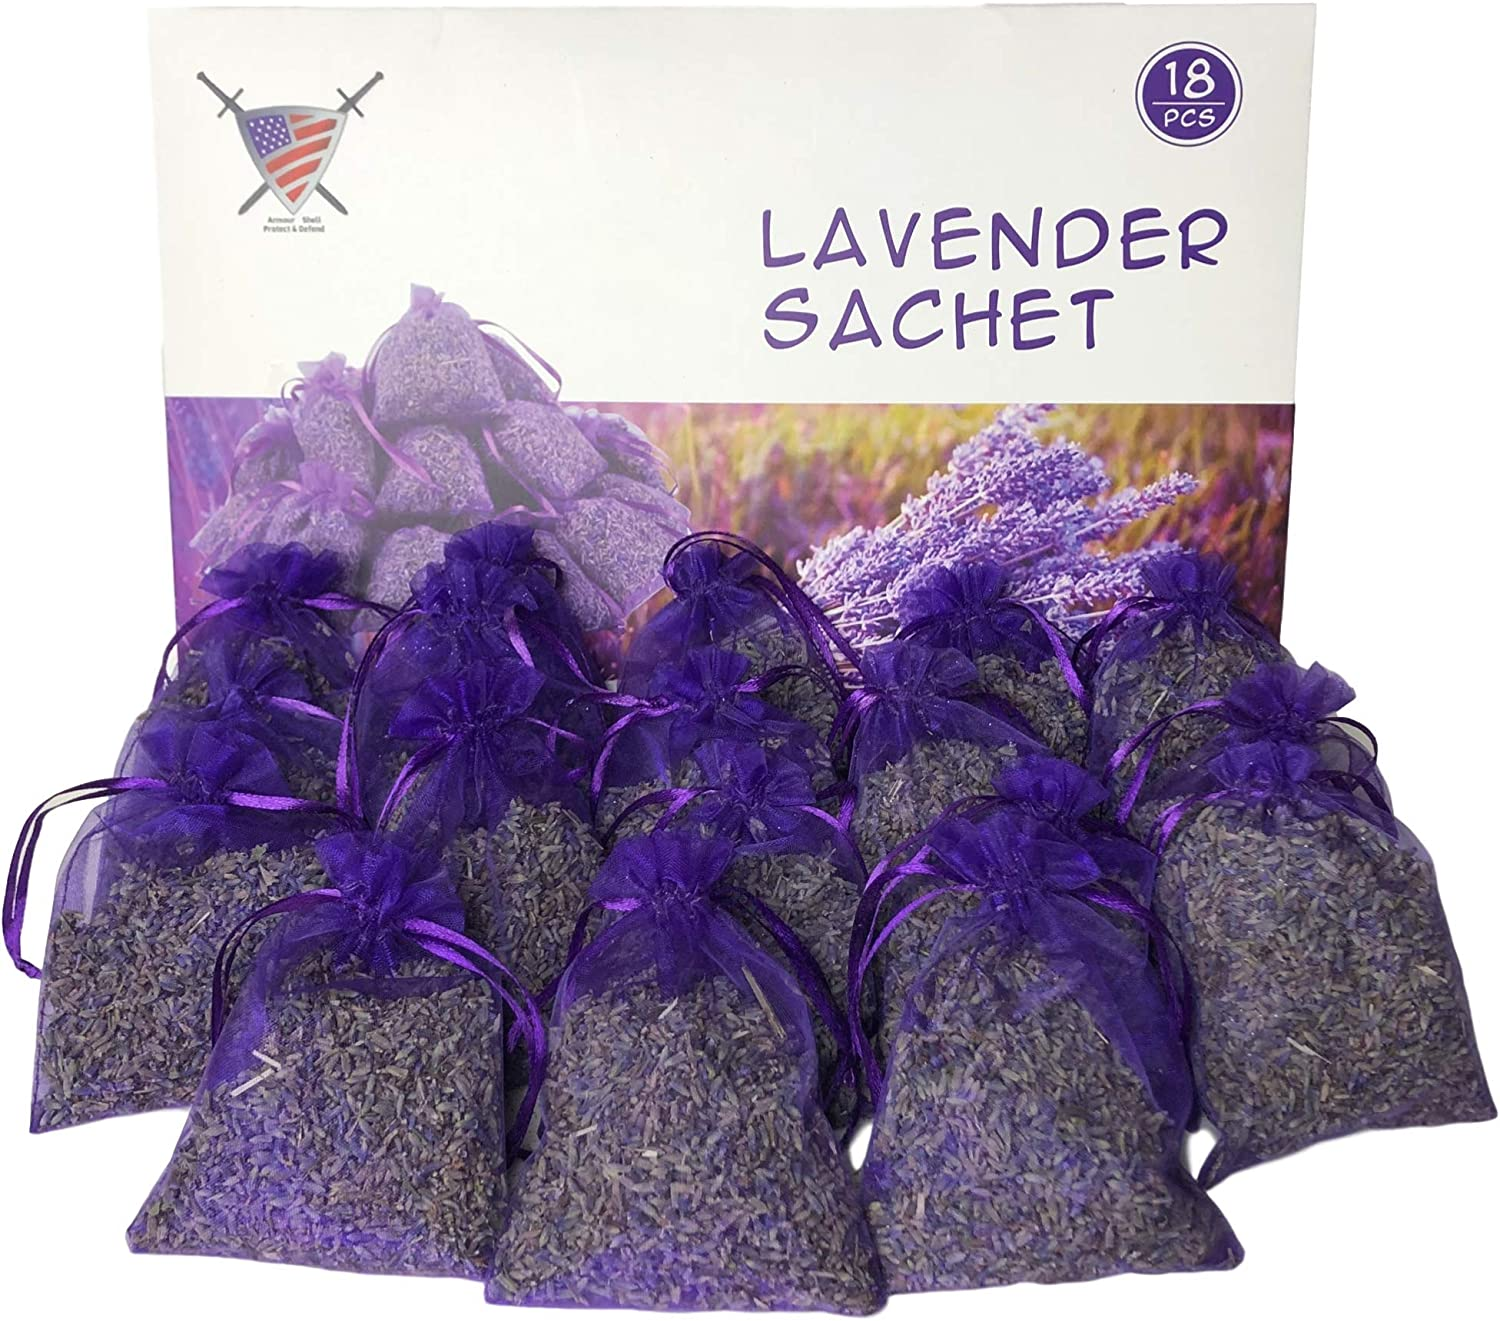 Lavender Sachets Moth Repellant - Dried Lavendar Flower Sachet Bags (18 Pack) for Home Fragrance and Long-Lasting Fresh Scents, Natural Moths Repellent for Clothes Closets. Protect & Defend Clothing.